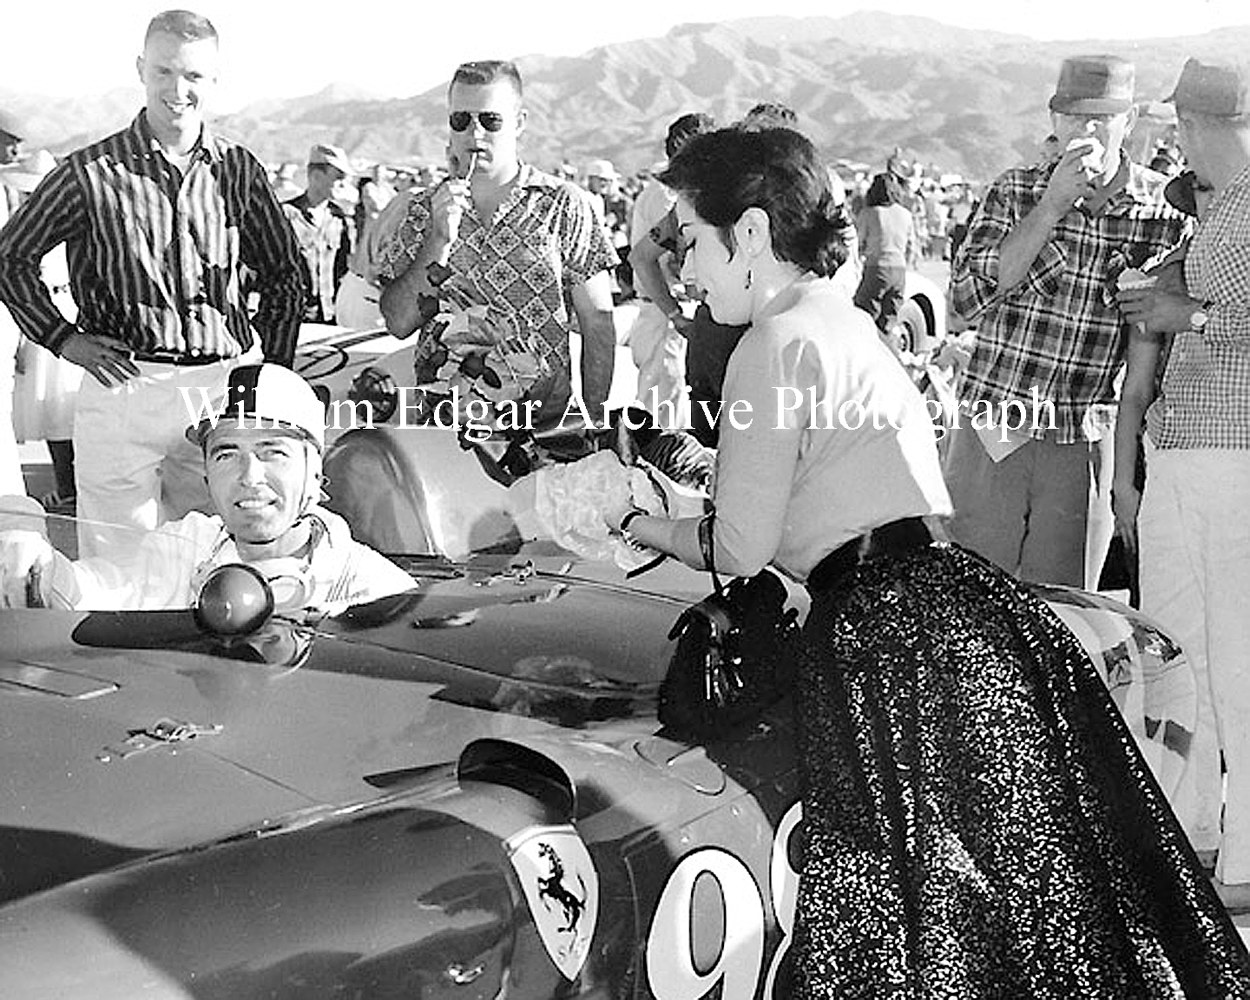 Photography [CS-FYPS6] Carroll Shelby in the Edgar Ferrari 410 Sport with Dan Gurney and Yma Sumac - November 3, 1956  by William Edgar